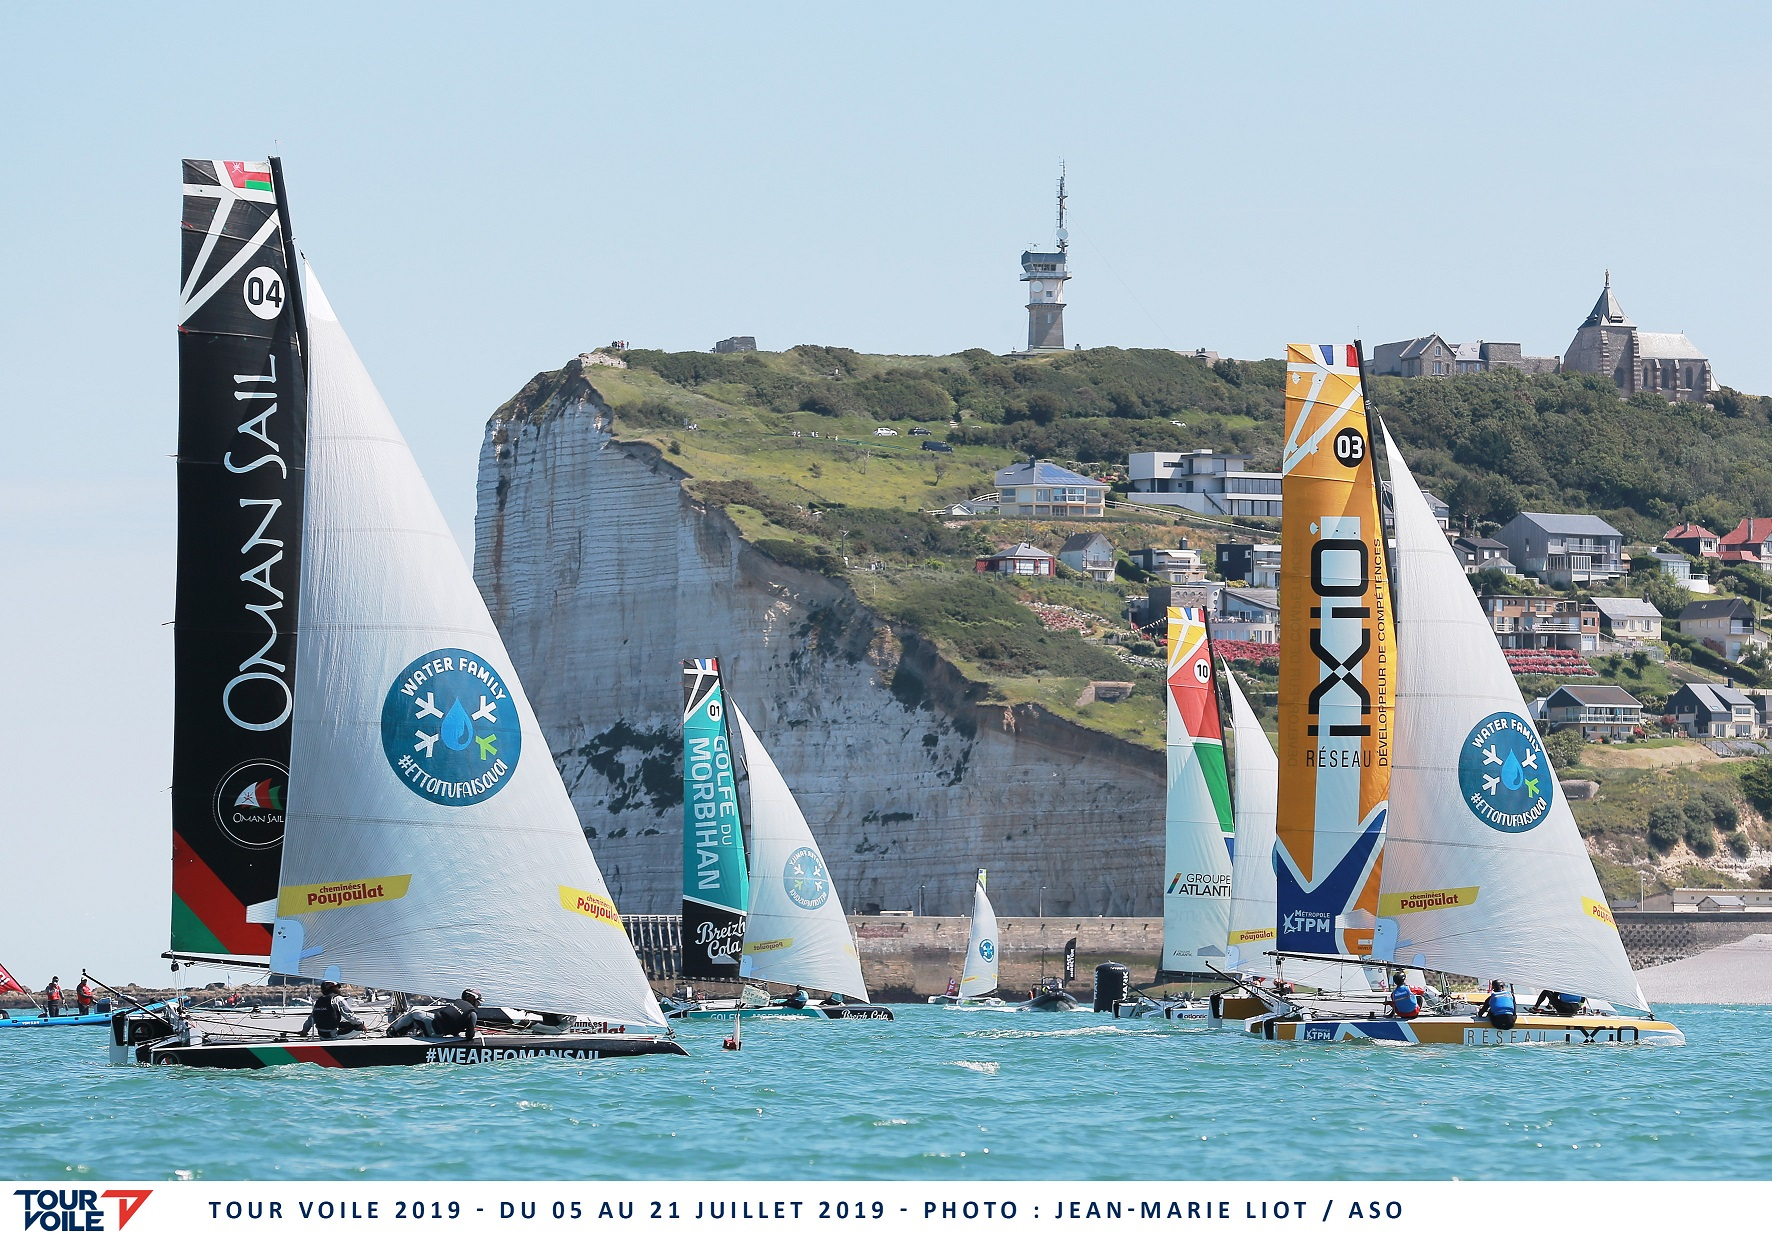 Oman Sail team make remarkable comeback to stay on course for Tour Voile target